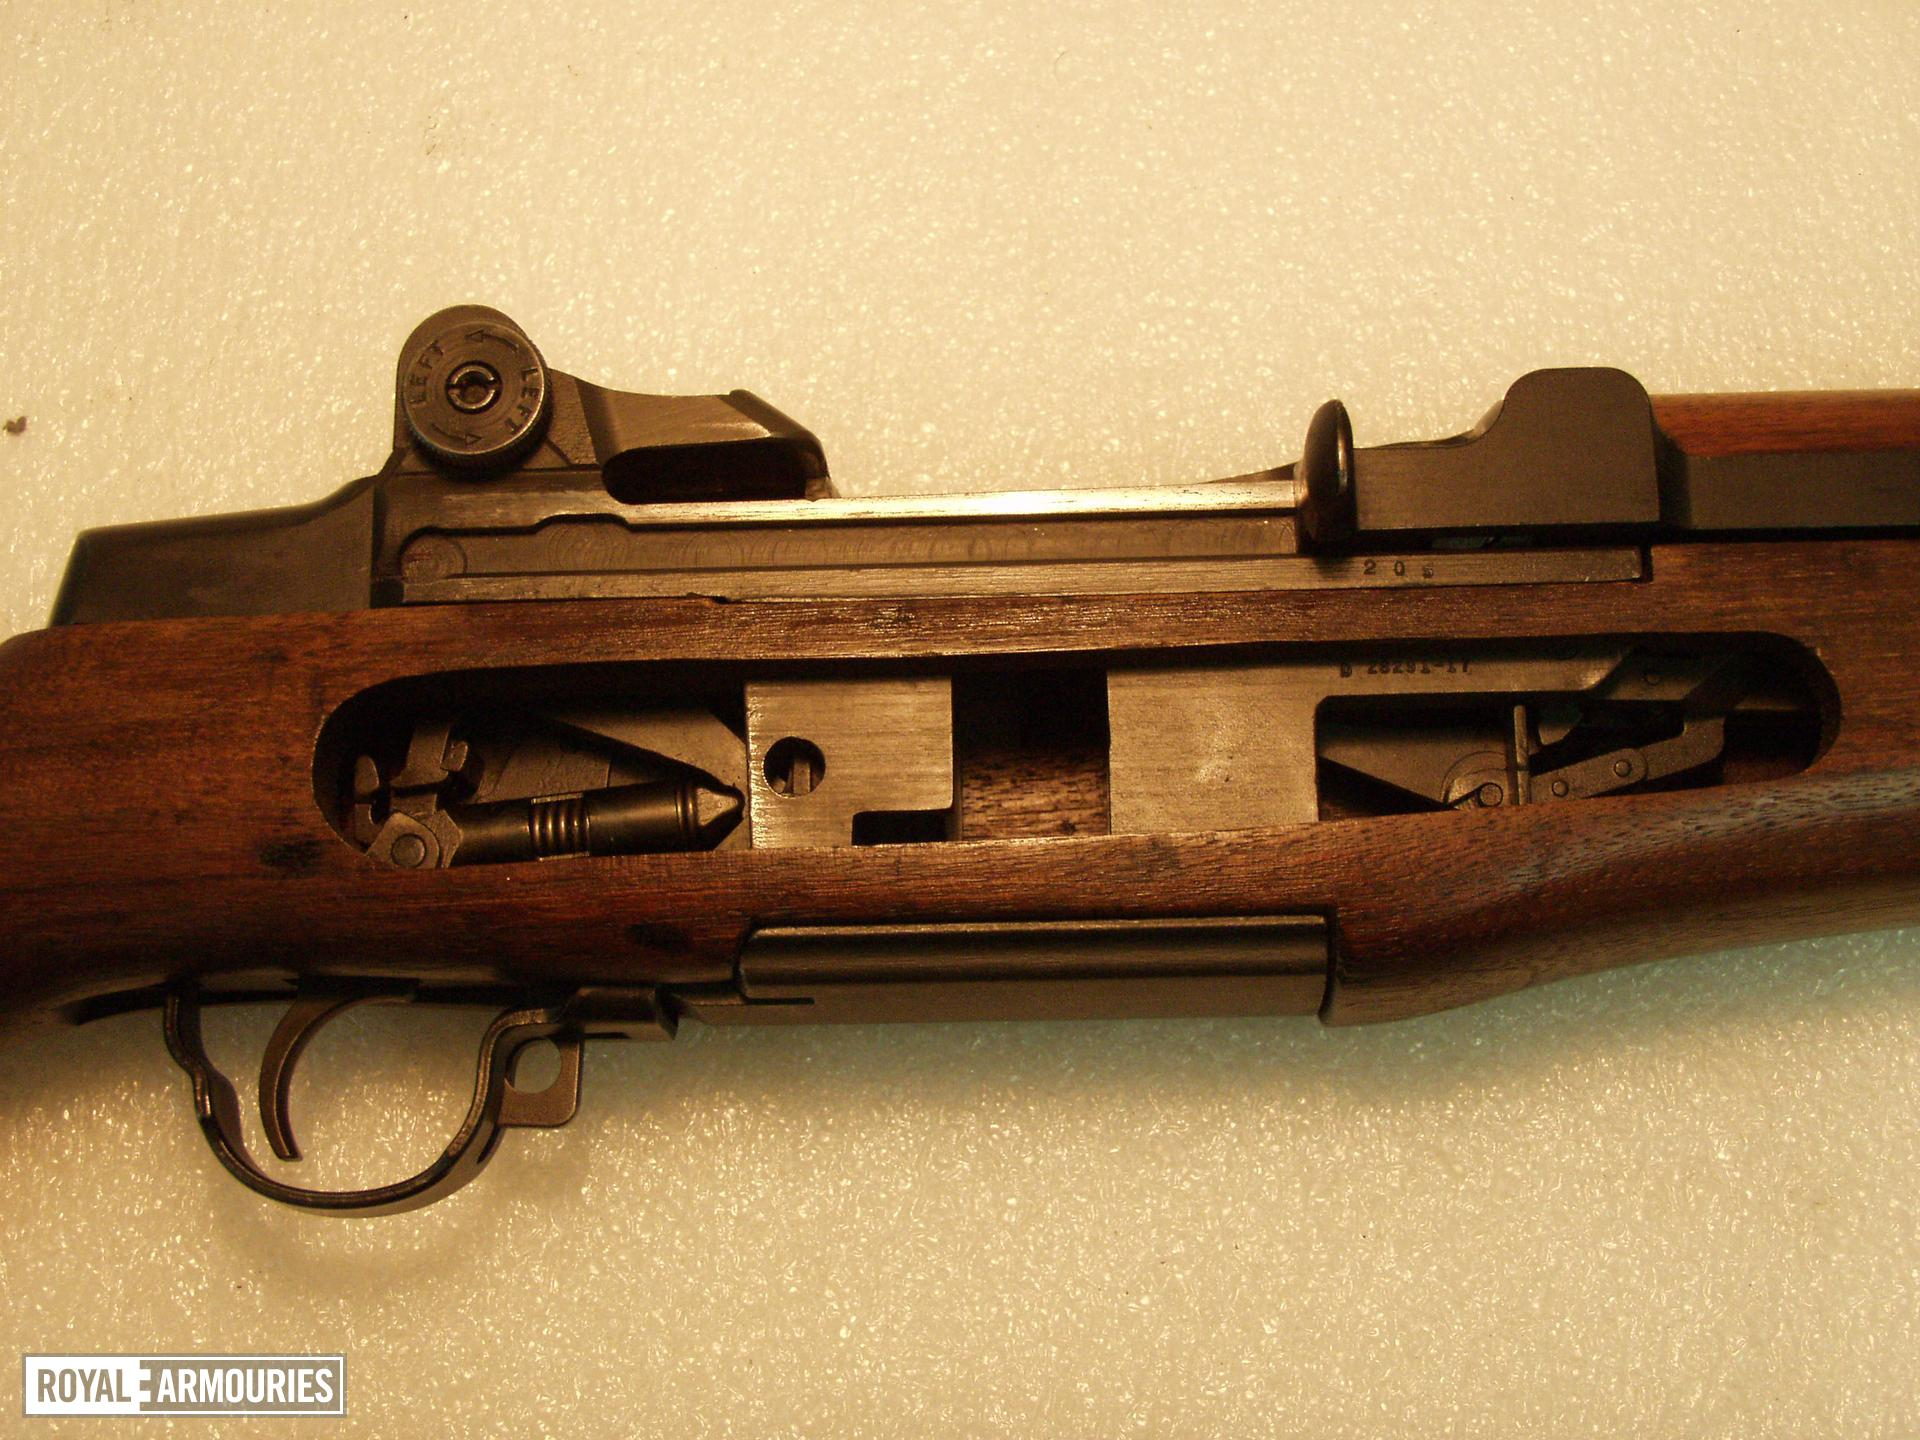 Centrefire self-loading magazine rifle - M-1 Garand Sectioned; by Springfield Armoury. Notes indicate that the weapon was sectioned in 1992 by the School of Electrical and Mechanical Engineering at Borden - no author details (this line entered by Mike Sterry, Firearms Technical Manager, NFC,  21.10.14)